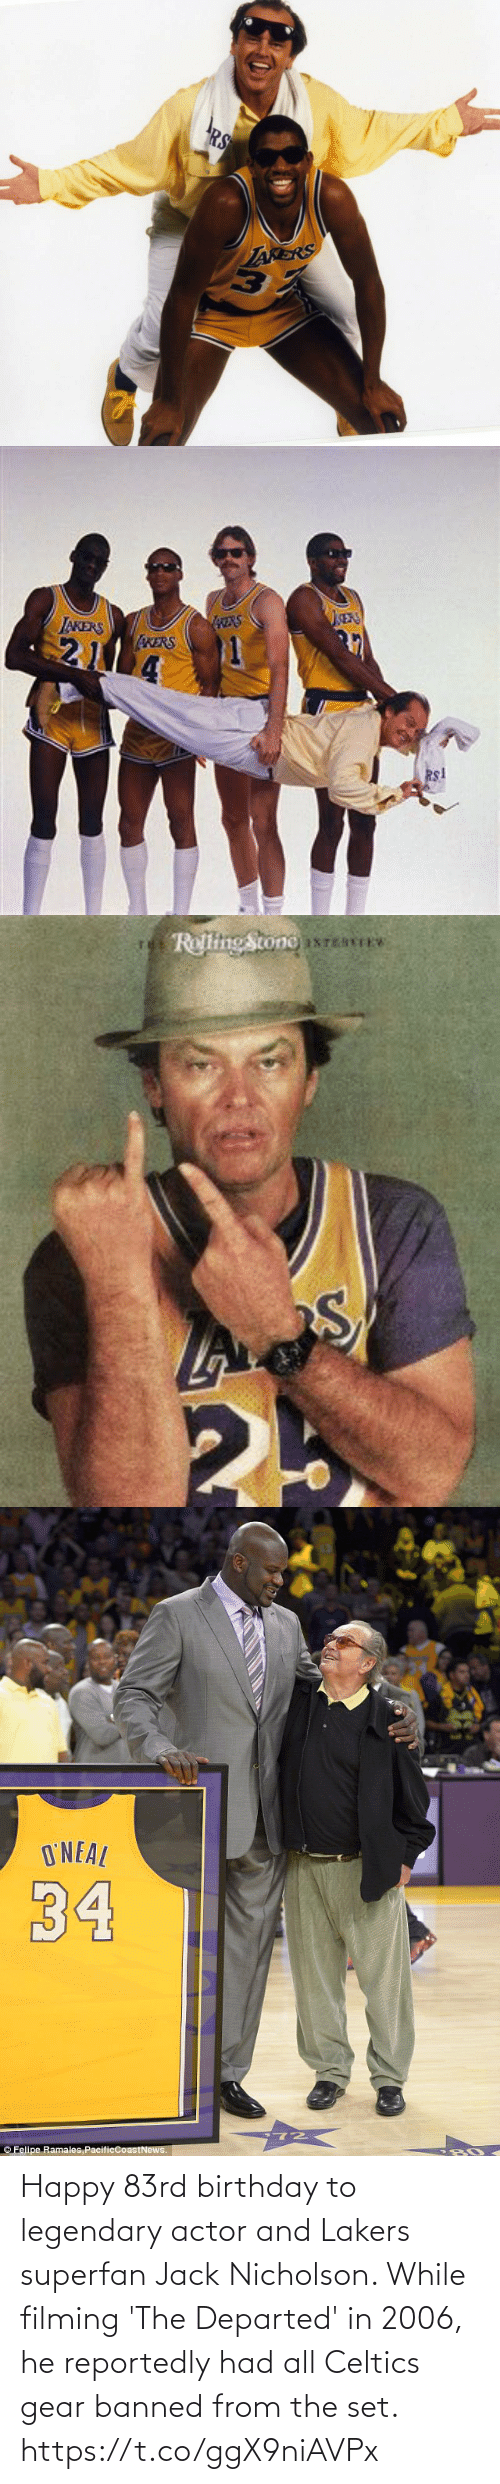 Los Angeles Lakers: Happy 83rd birthday to legendary actor and Lakers superfan Jack Nicholson.   While filming 'The Departed' in 2006, he reportedly had all Celtics gear banned from the set. https://t.co/ggX9niAVPx